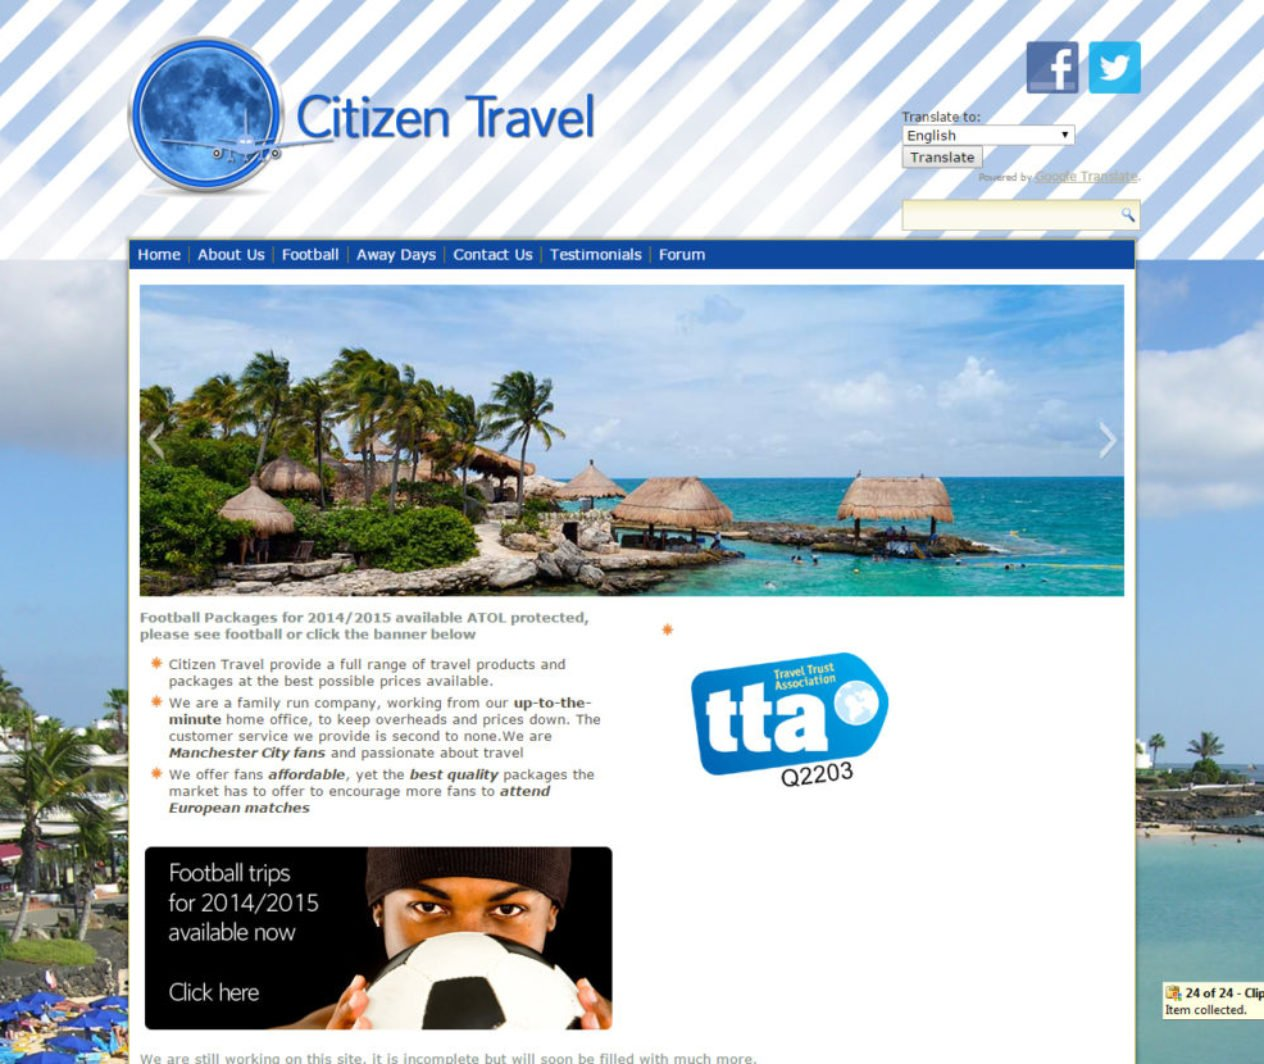 Citizen Travel